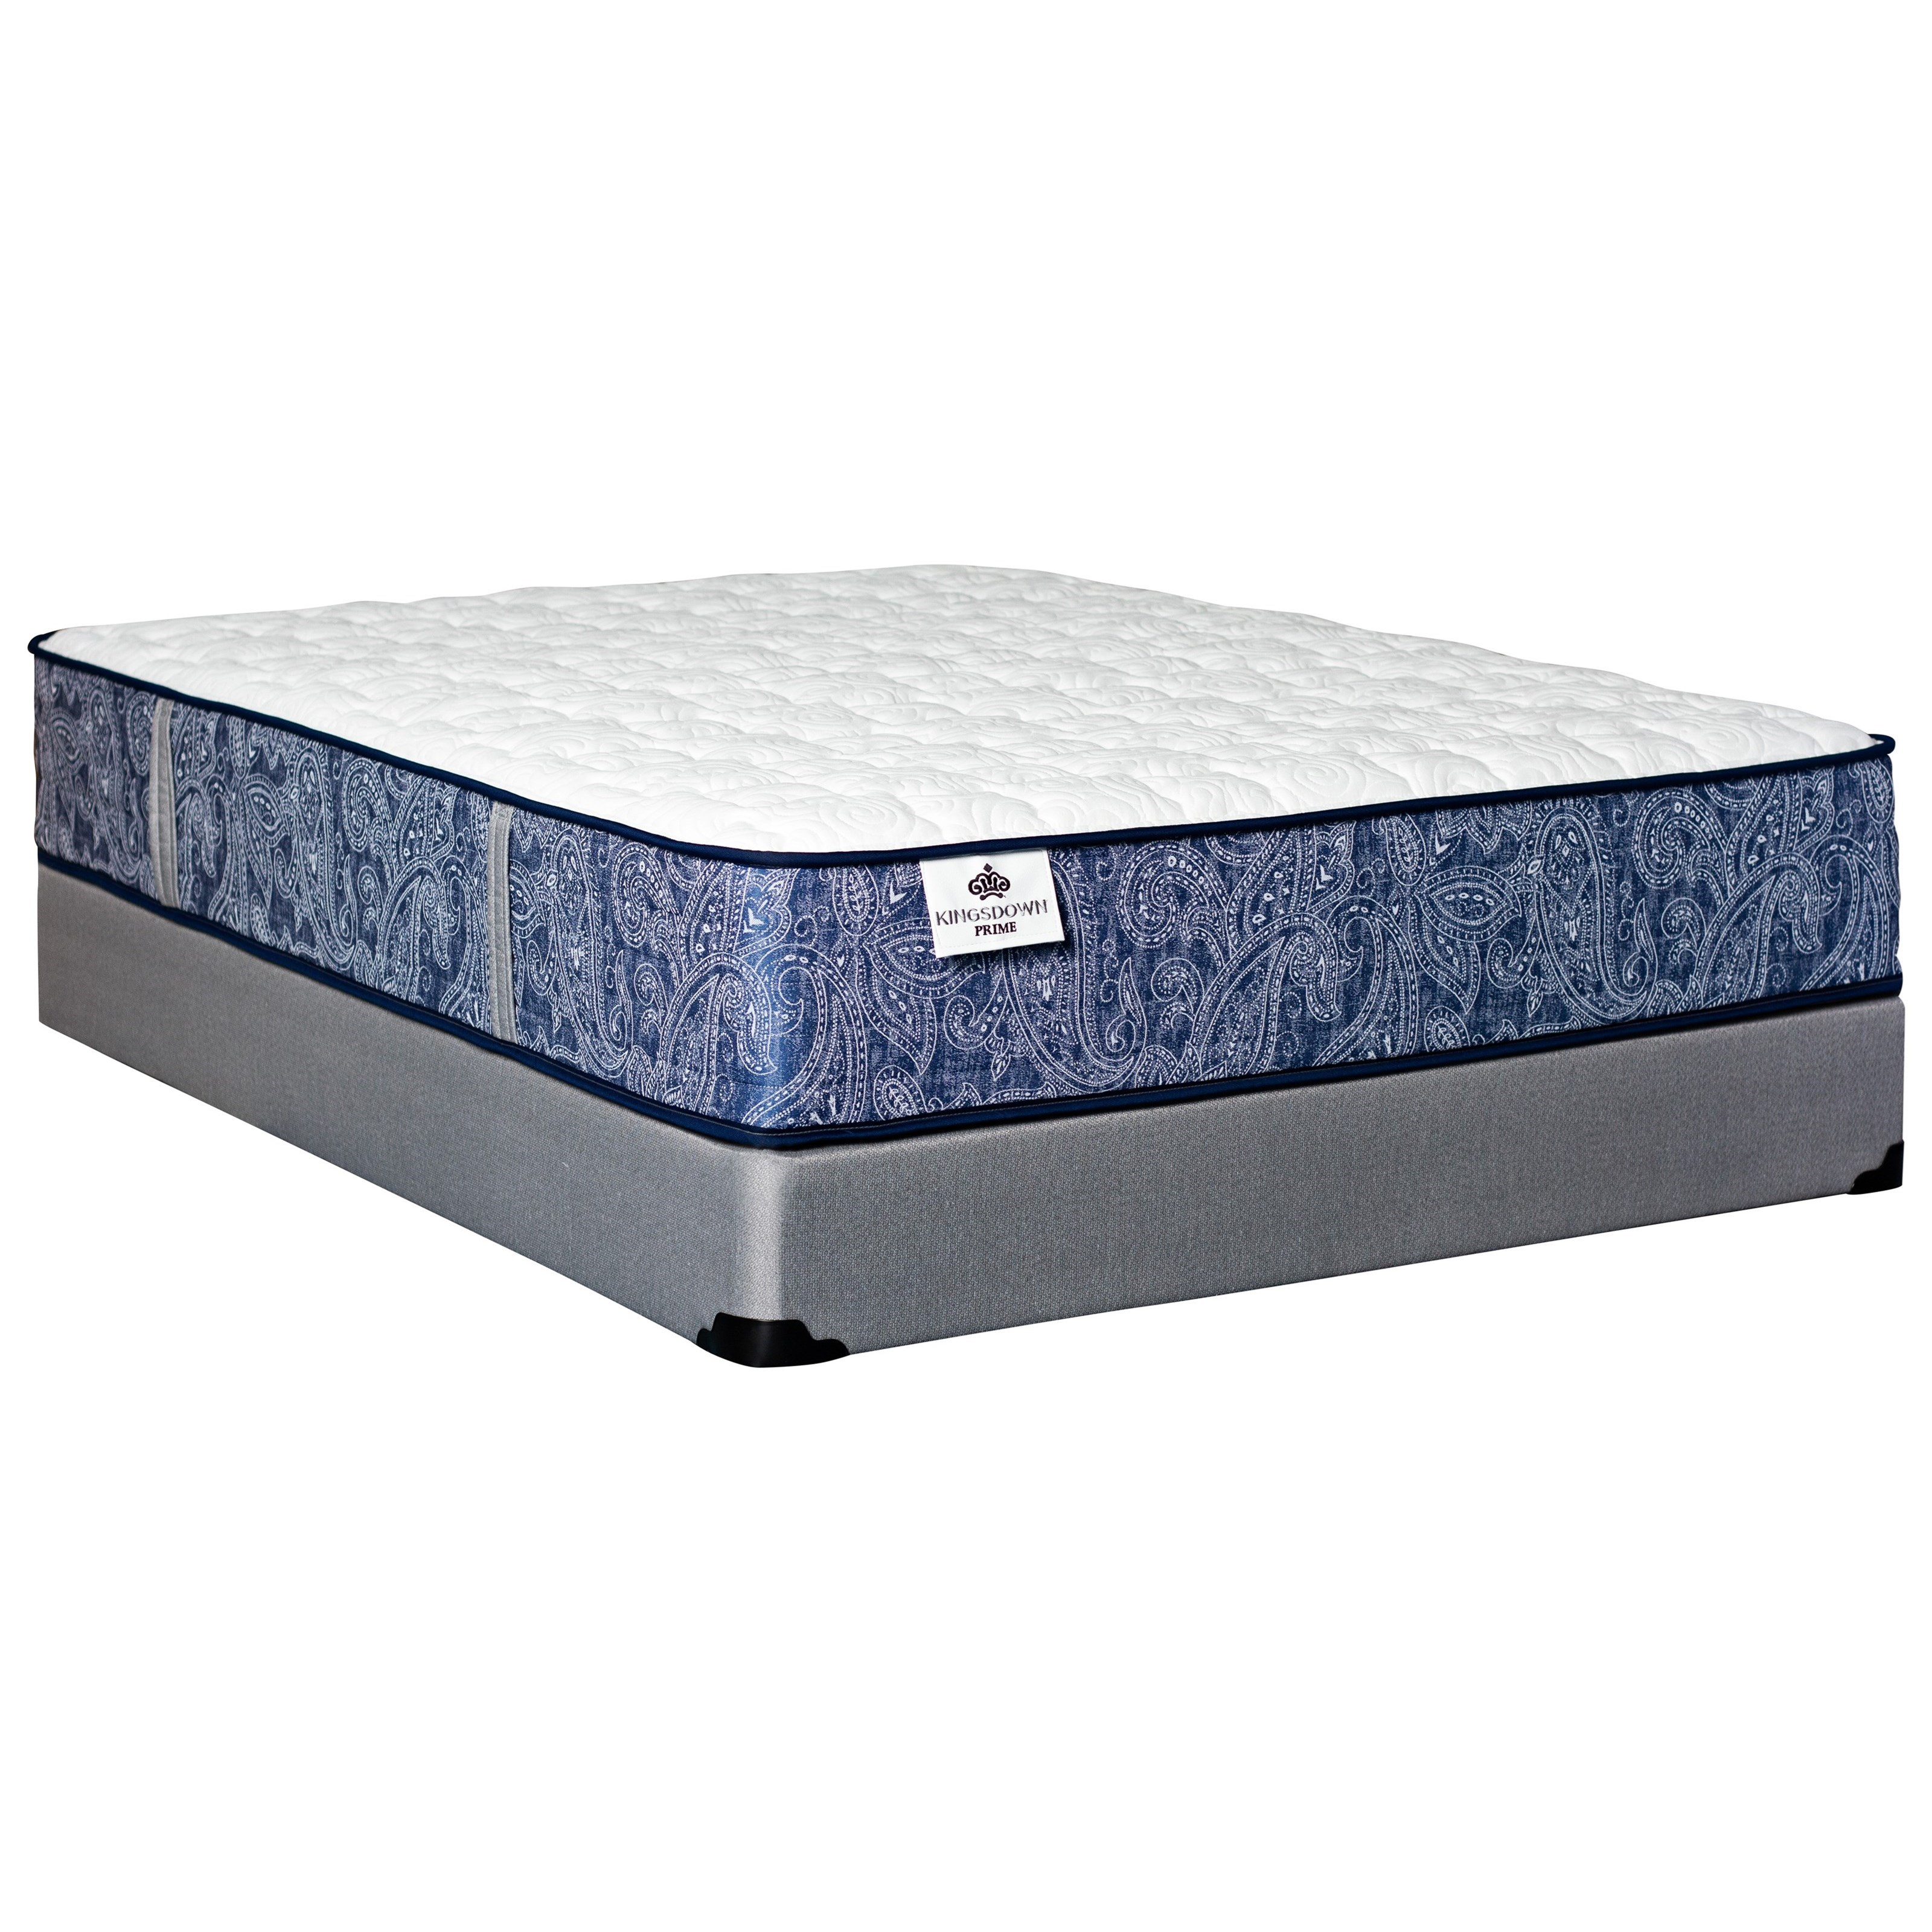 "Merrivale Firm Full 13"" Firm Coil on Coil Mattress Set by Kingsdown at Baer's Furniture"